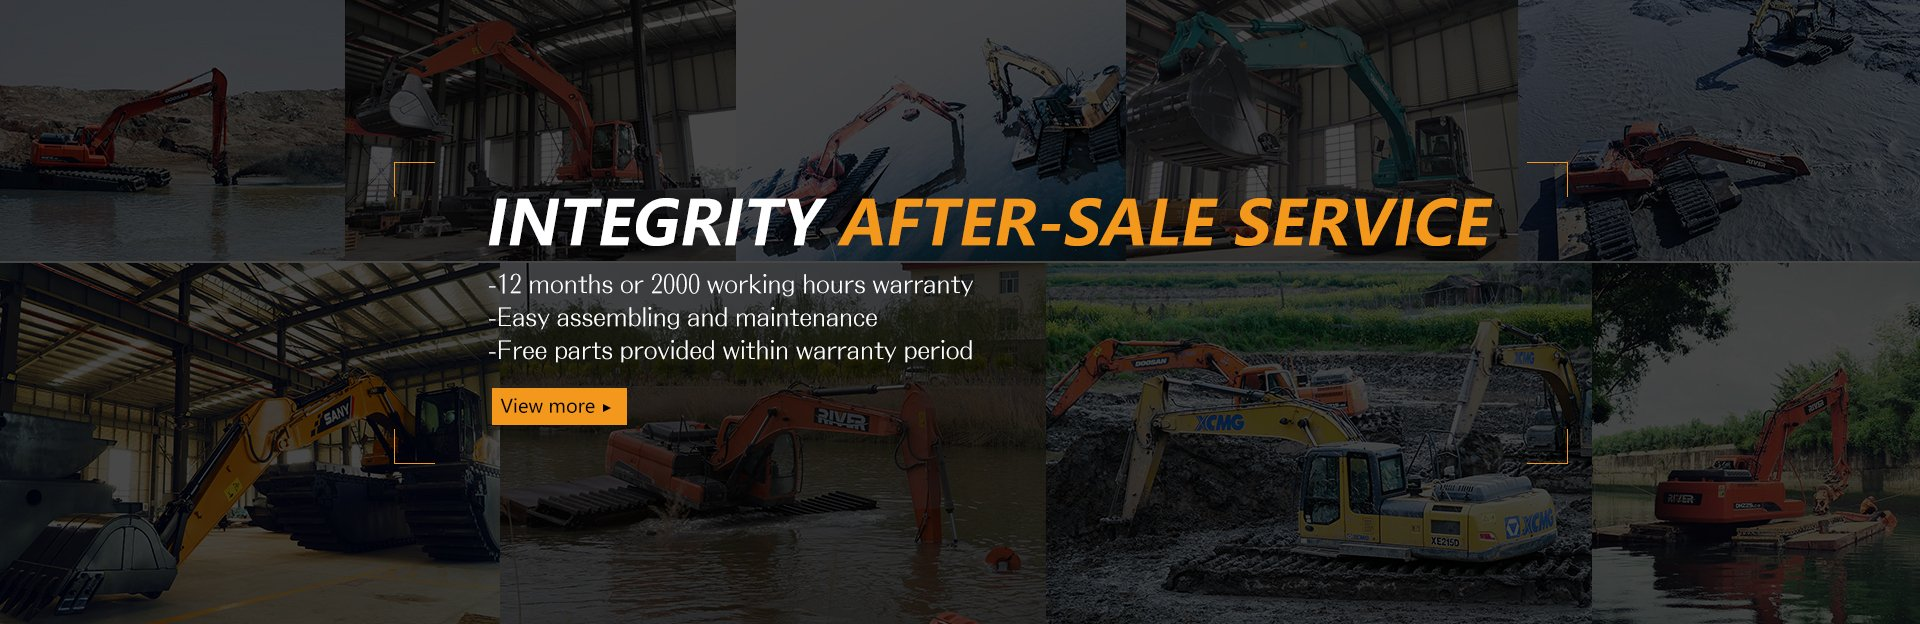 Integrity After-Sale Service 01